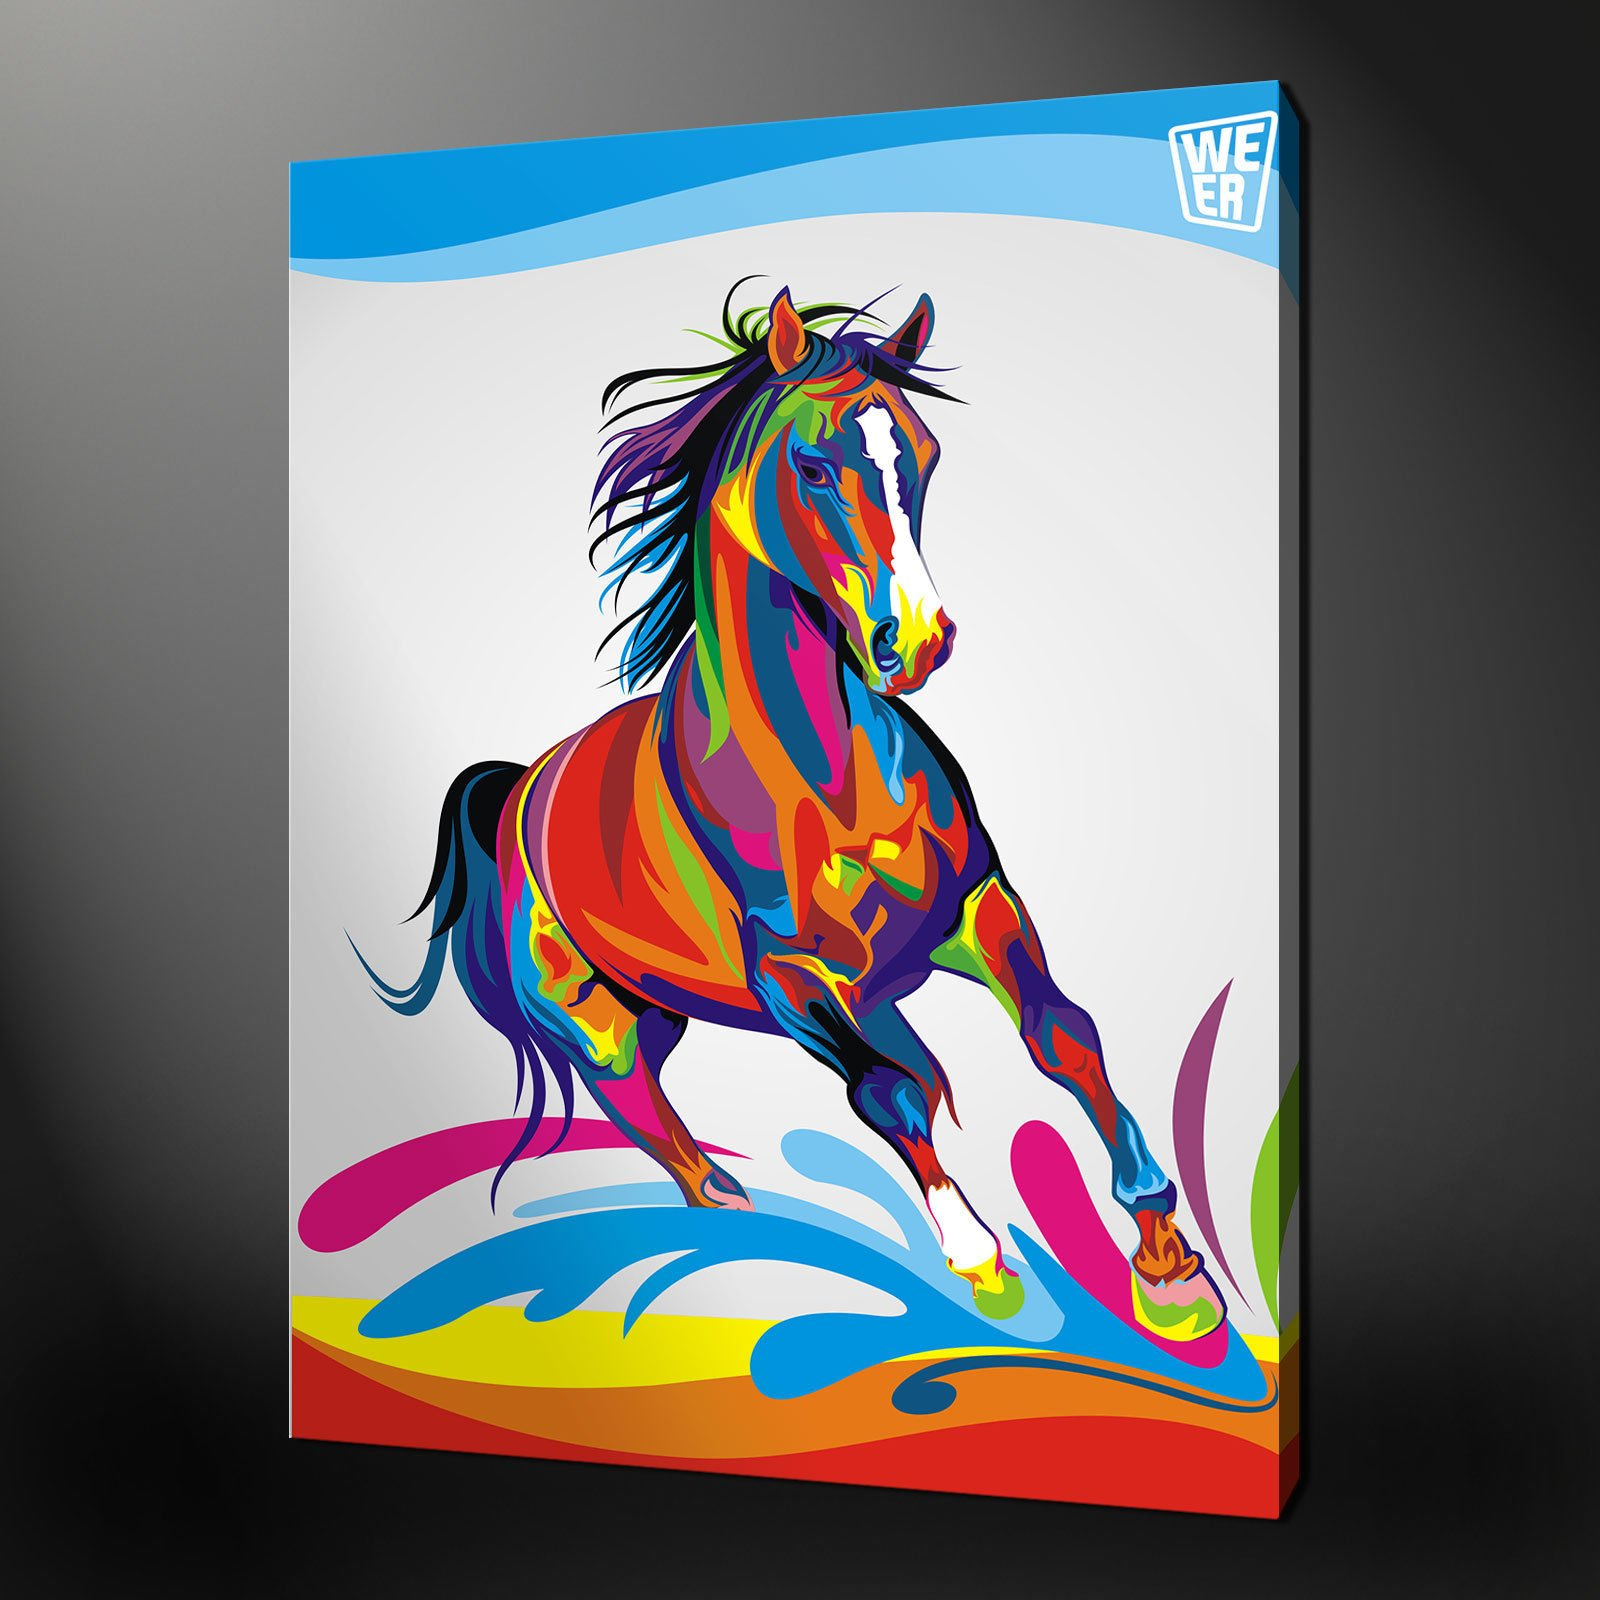 ABSTRACT HORSE QUALITY CANVAS PRINT PICTURE WALL ART